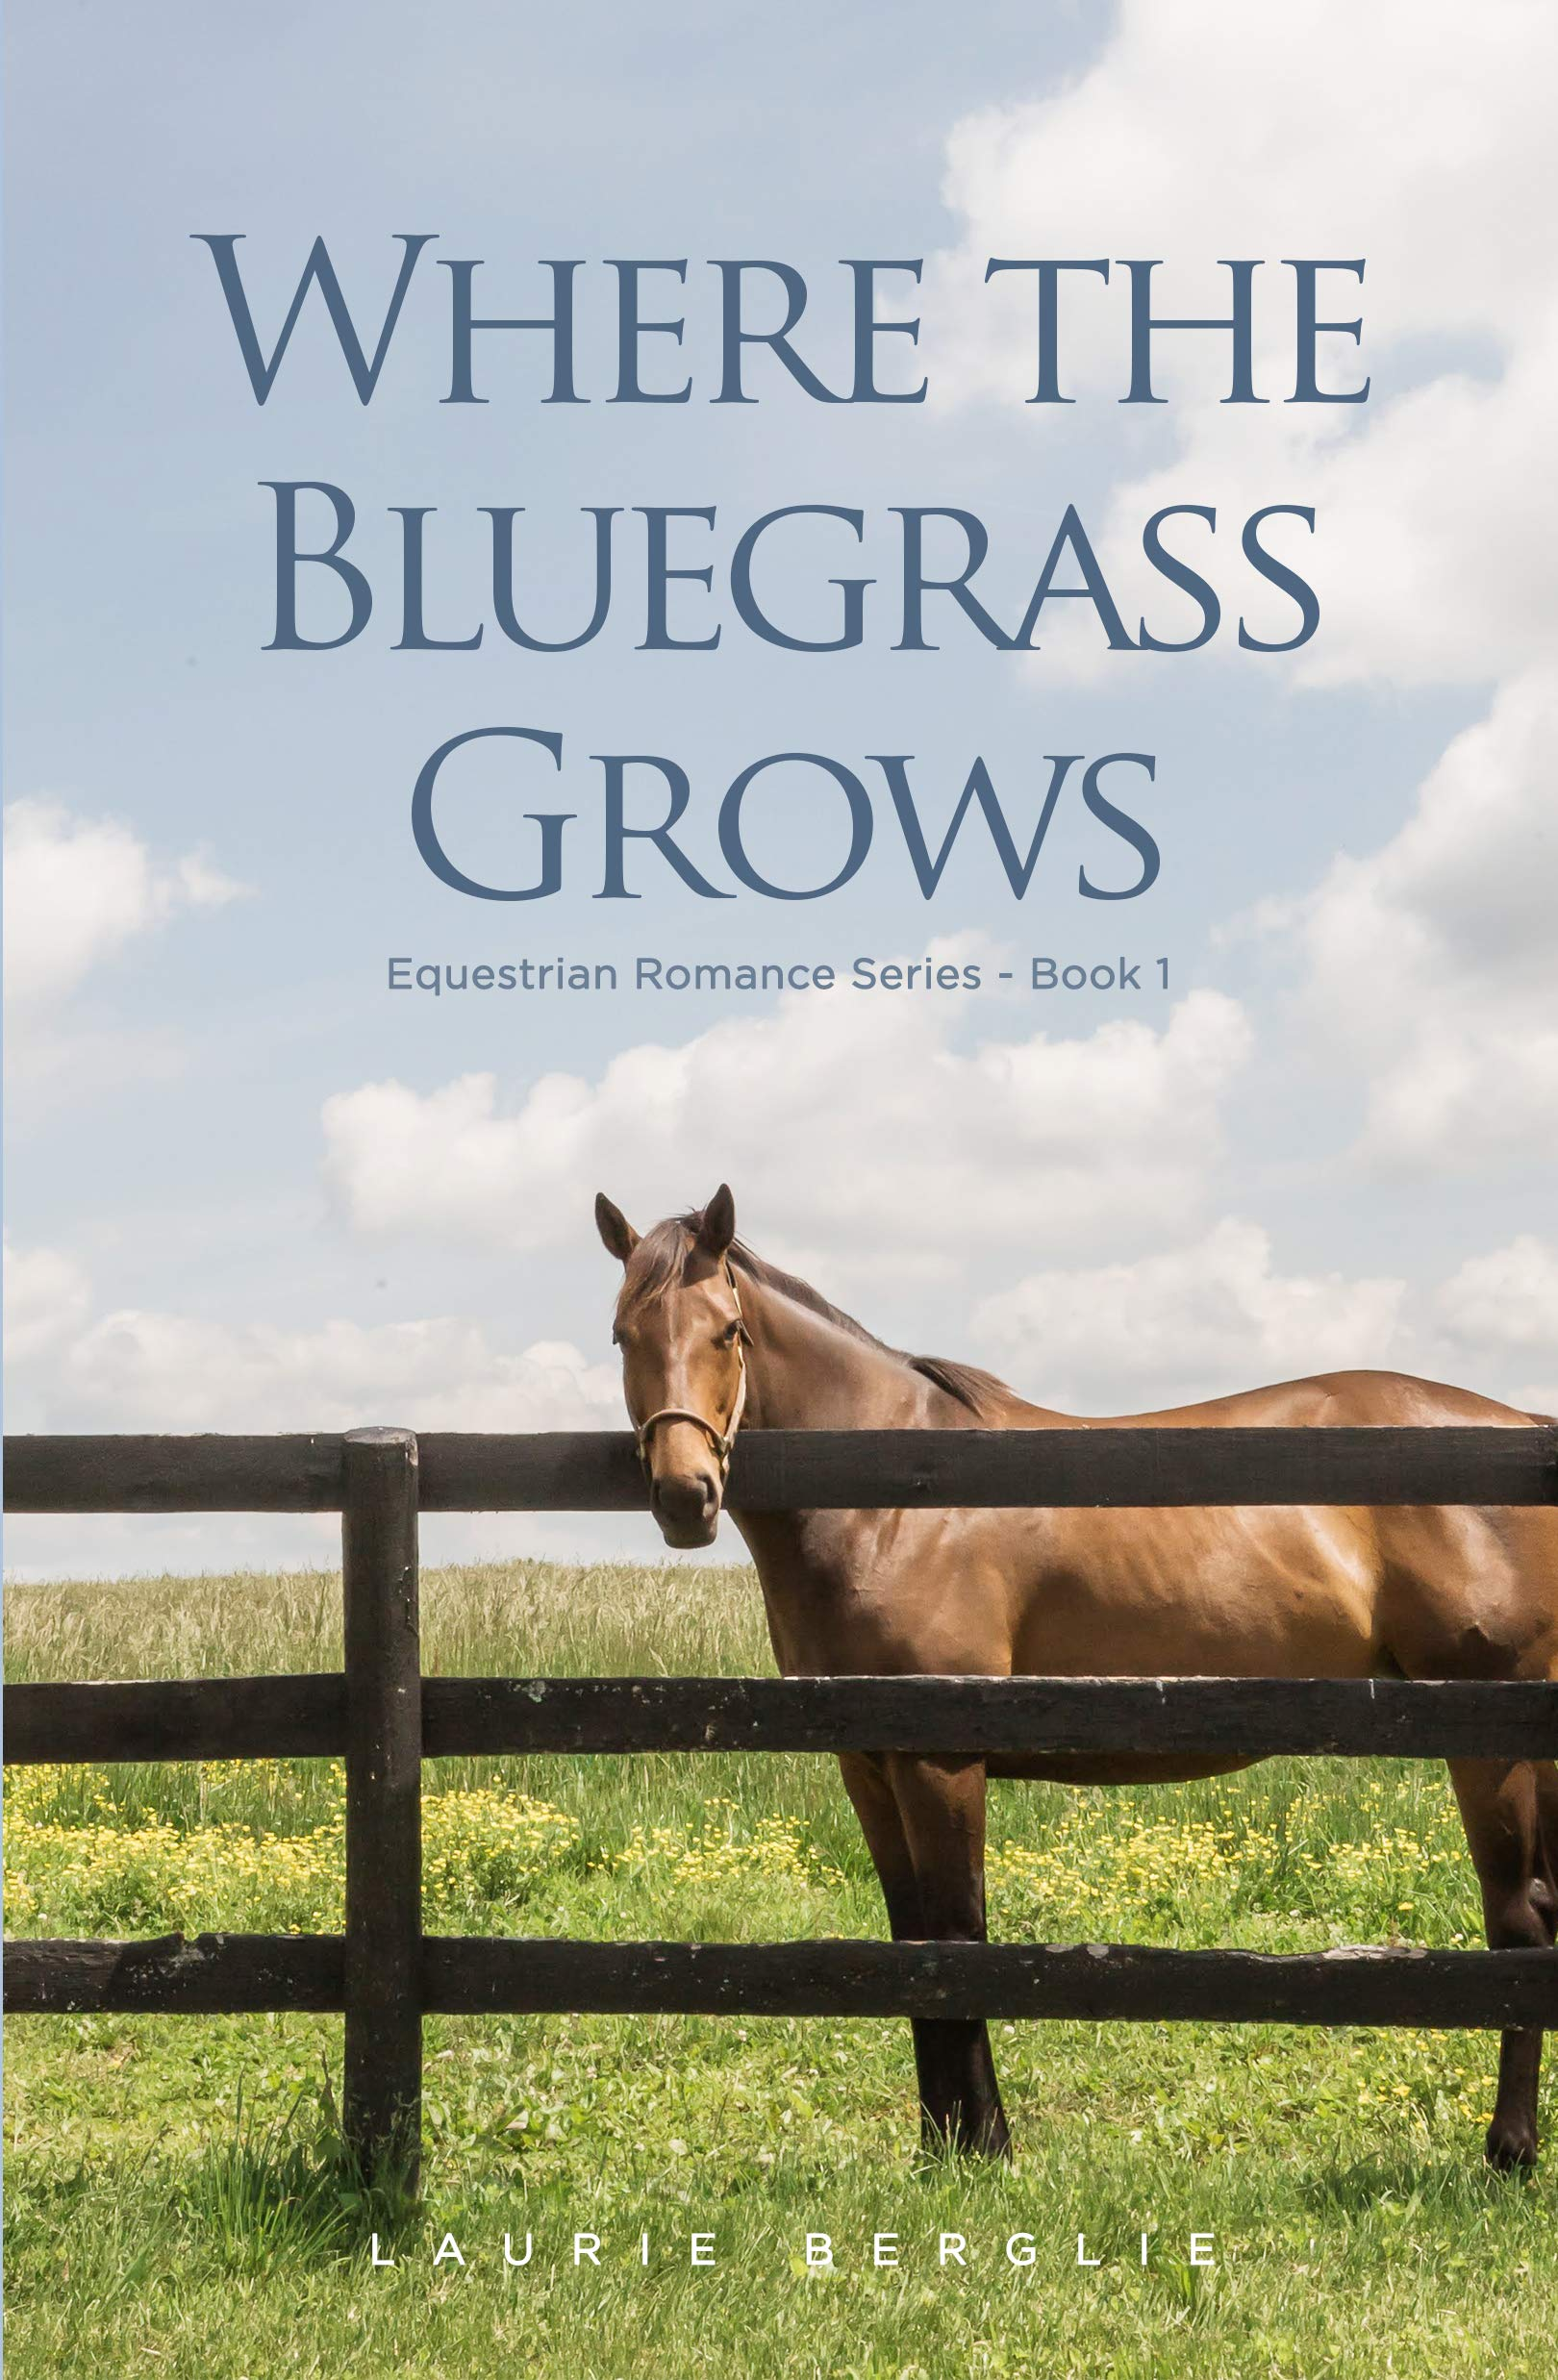 Where the Bluegrass Grows (Equestrian Romance Series Book 1) (English Edition)